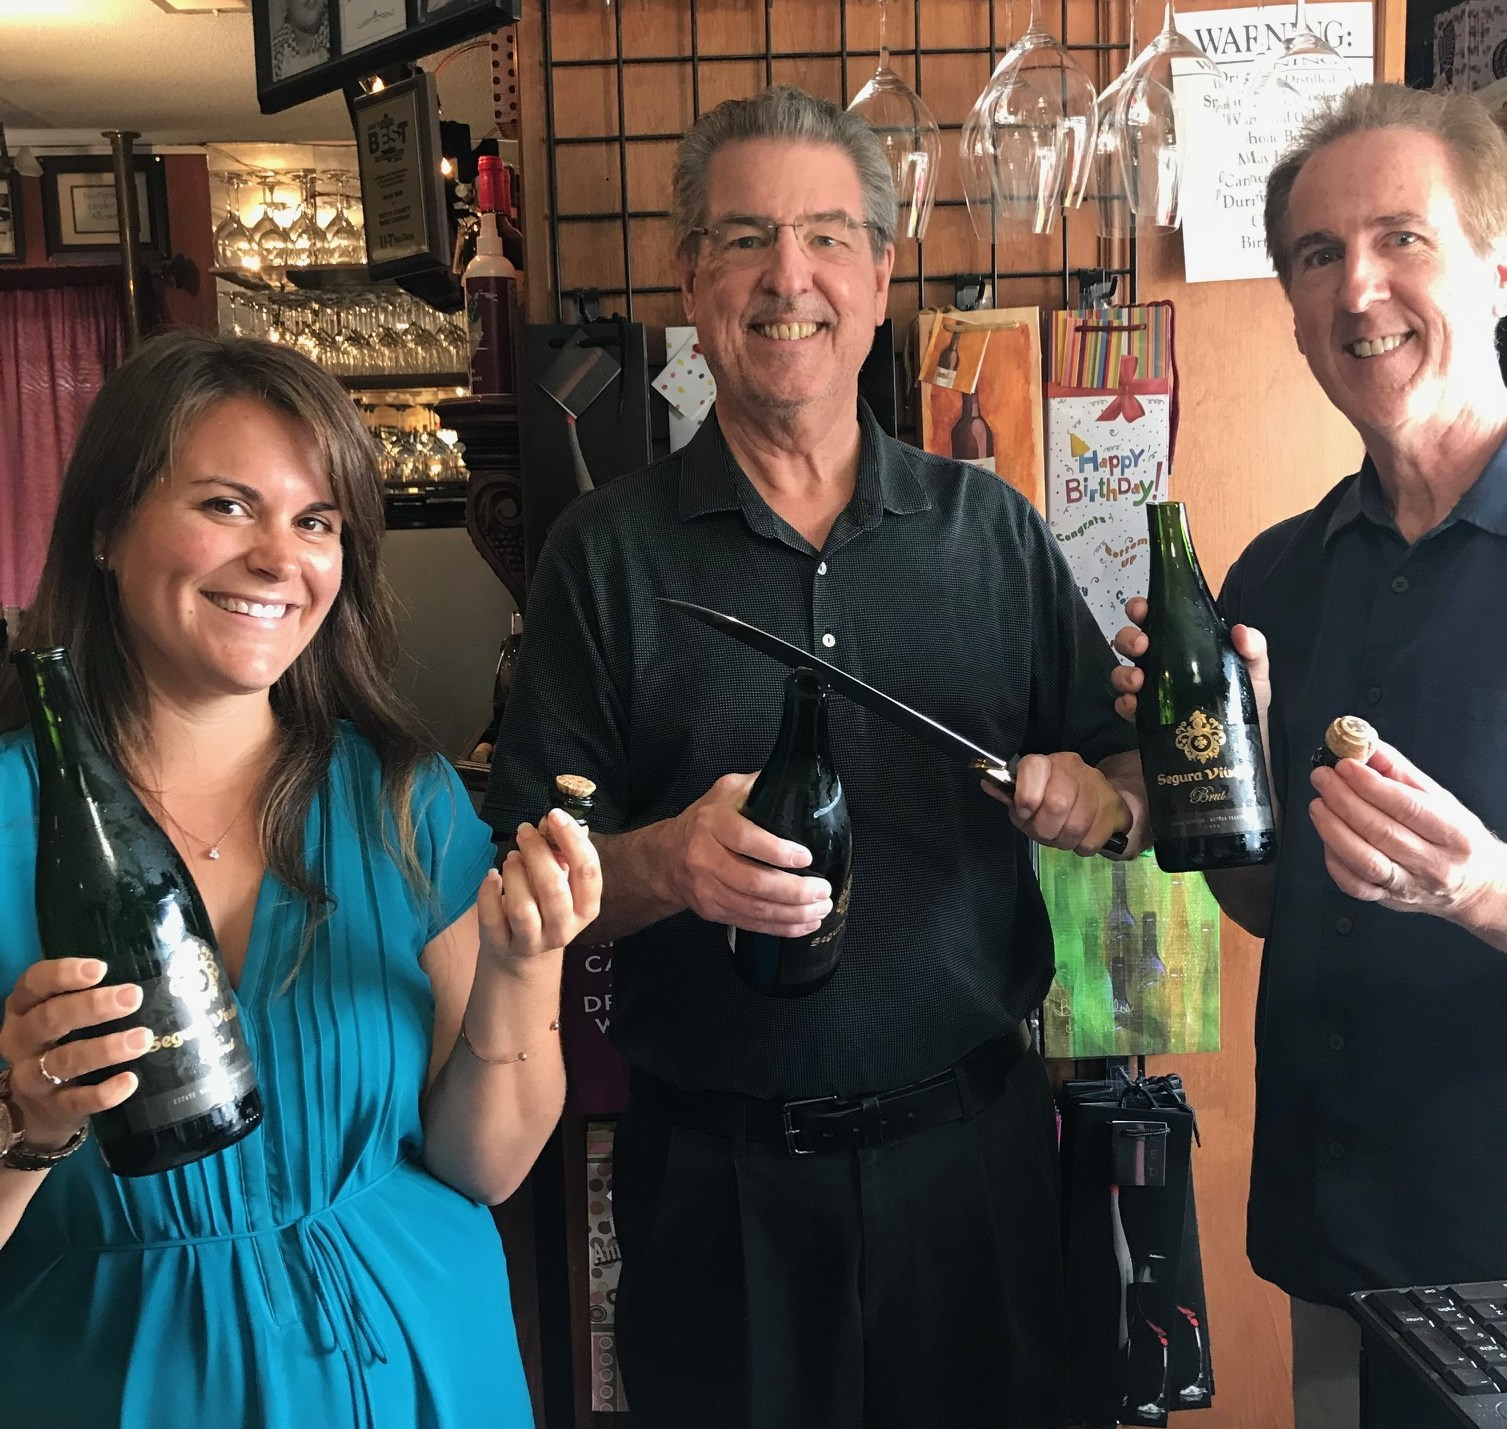 San Marcos wine shop marks anniversary with saber ceremony